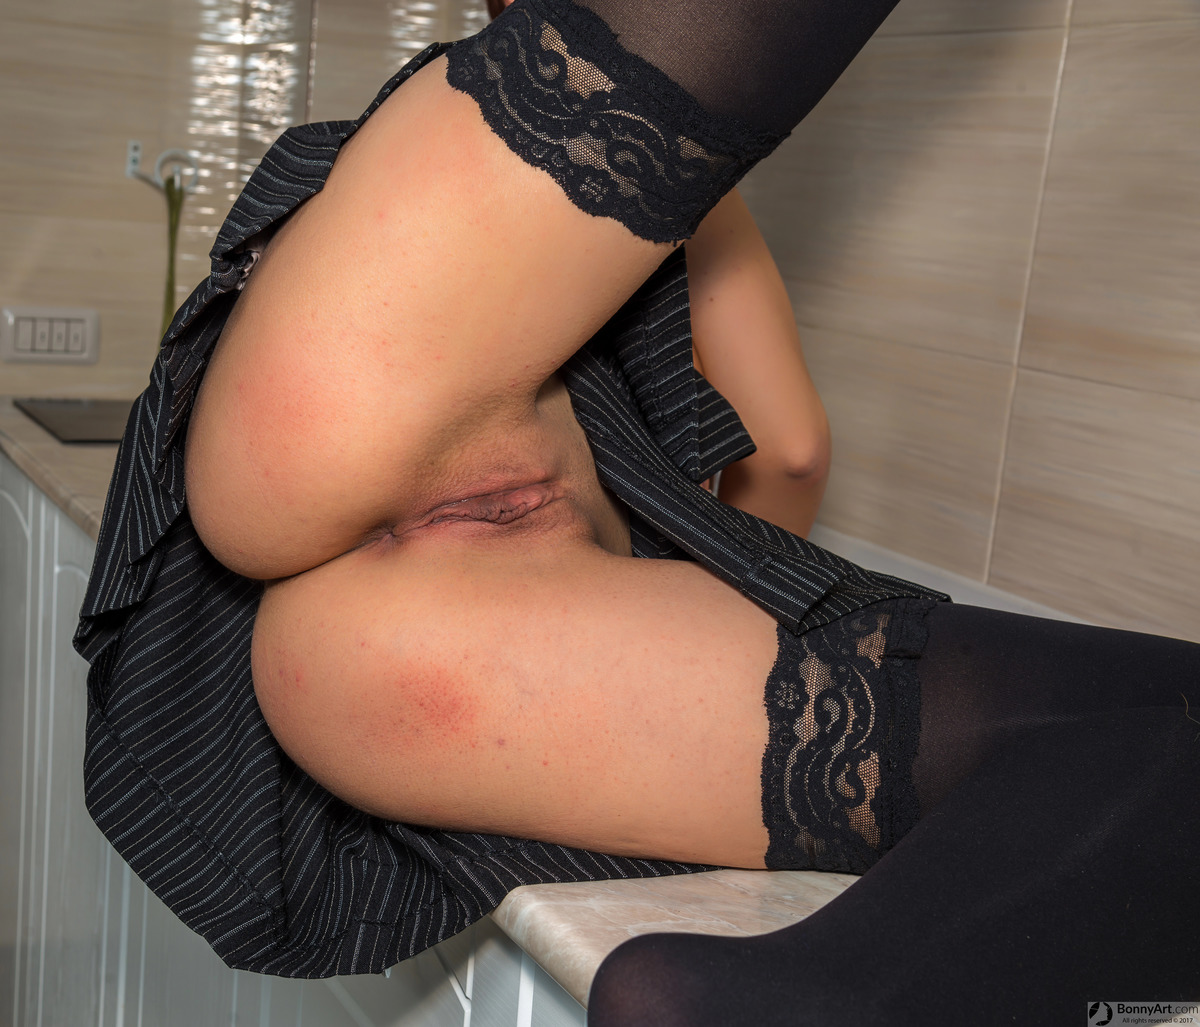 Open Legs Upskirt Vulva in the Kitchen